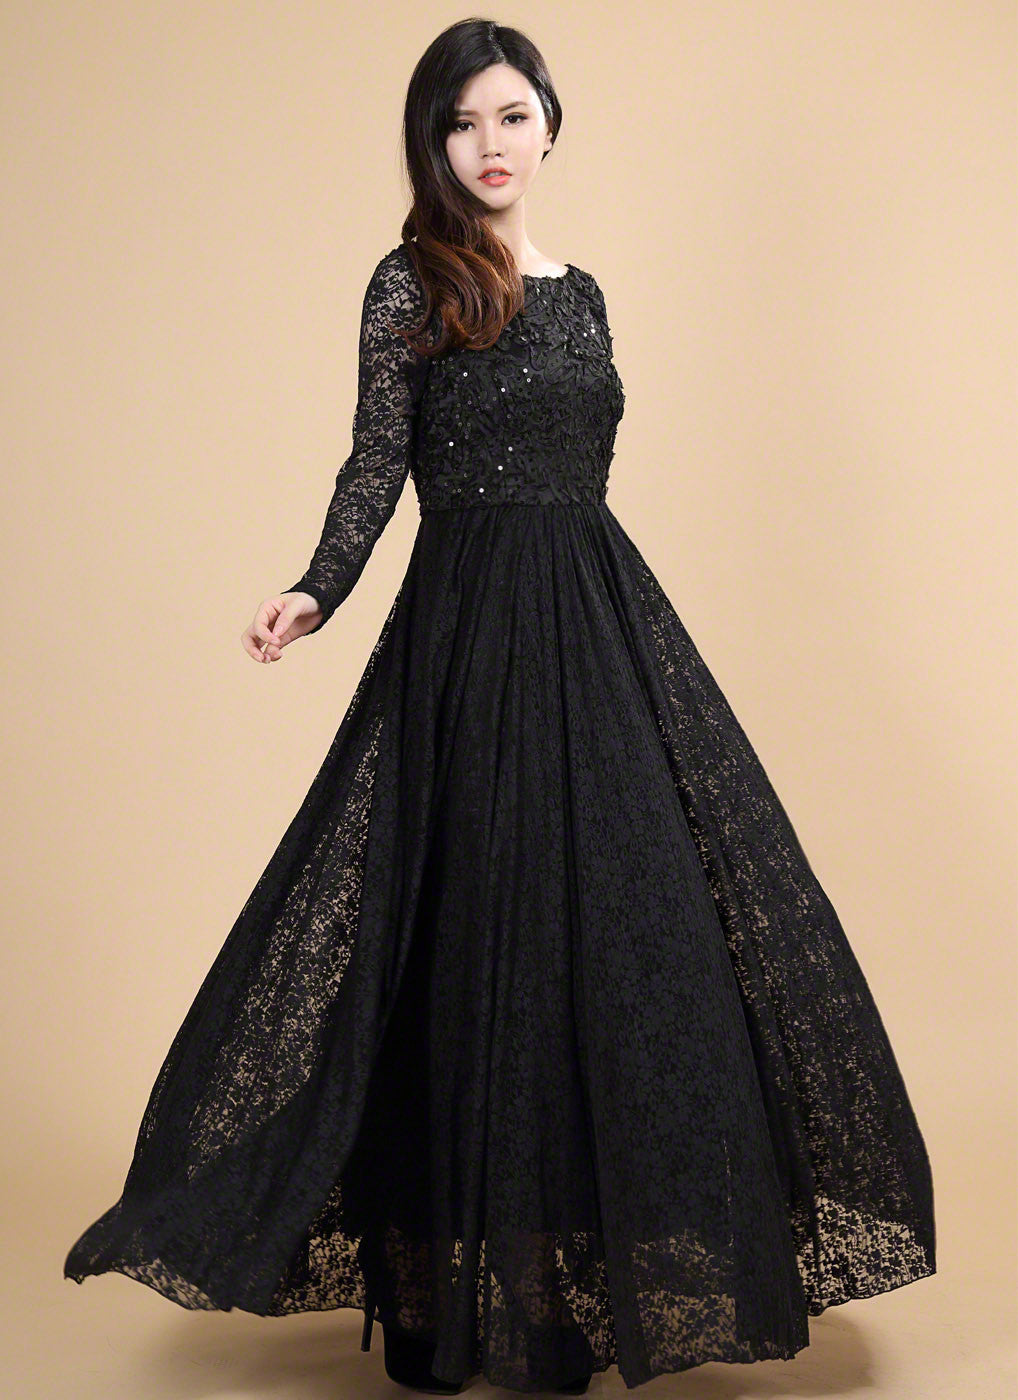 Open Back Black Lace Evening Dress With Sequin Embellishment And Floral Appliqué